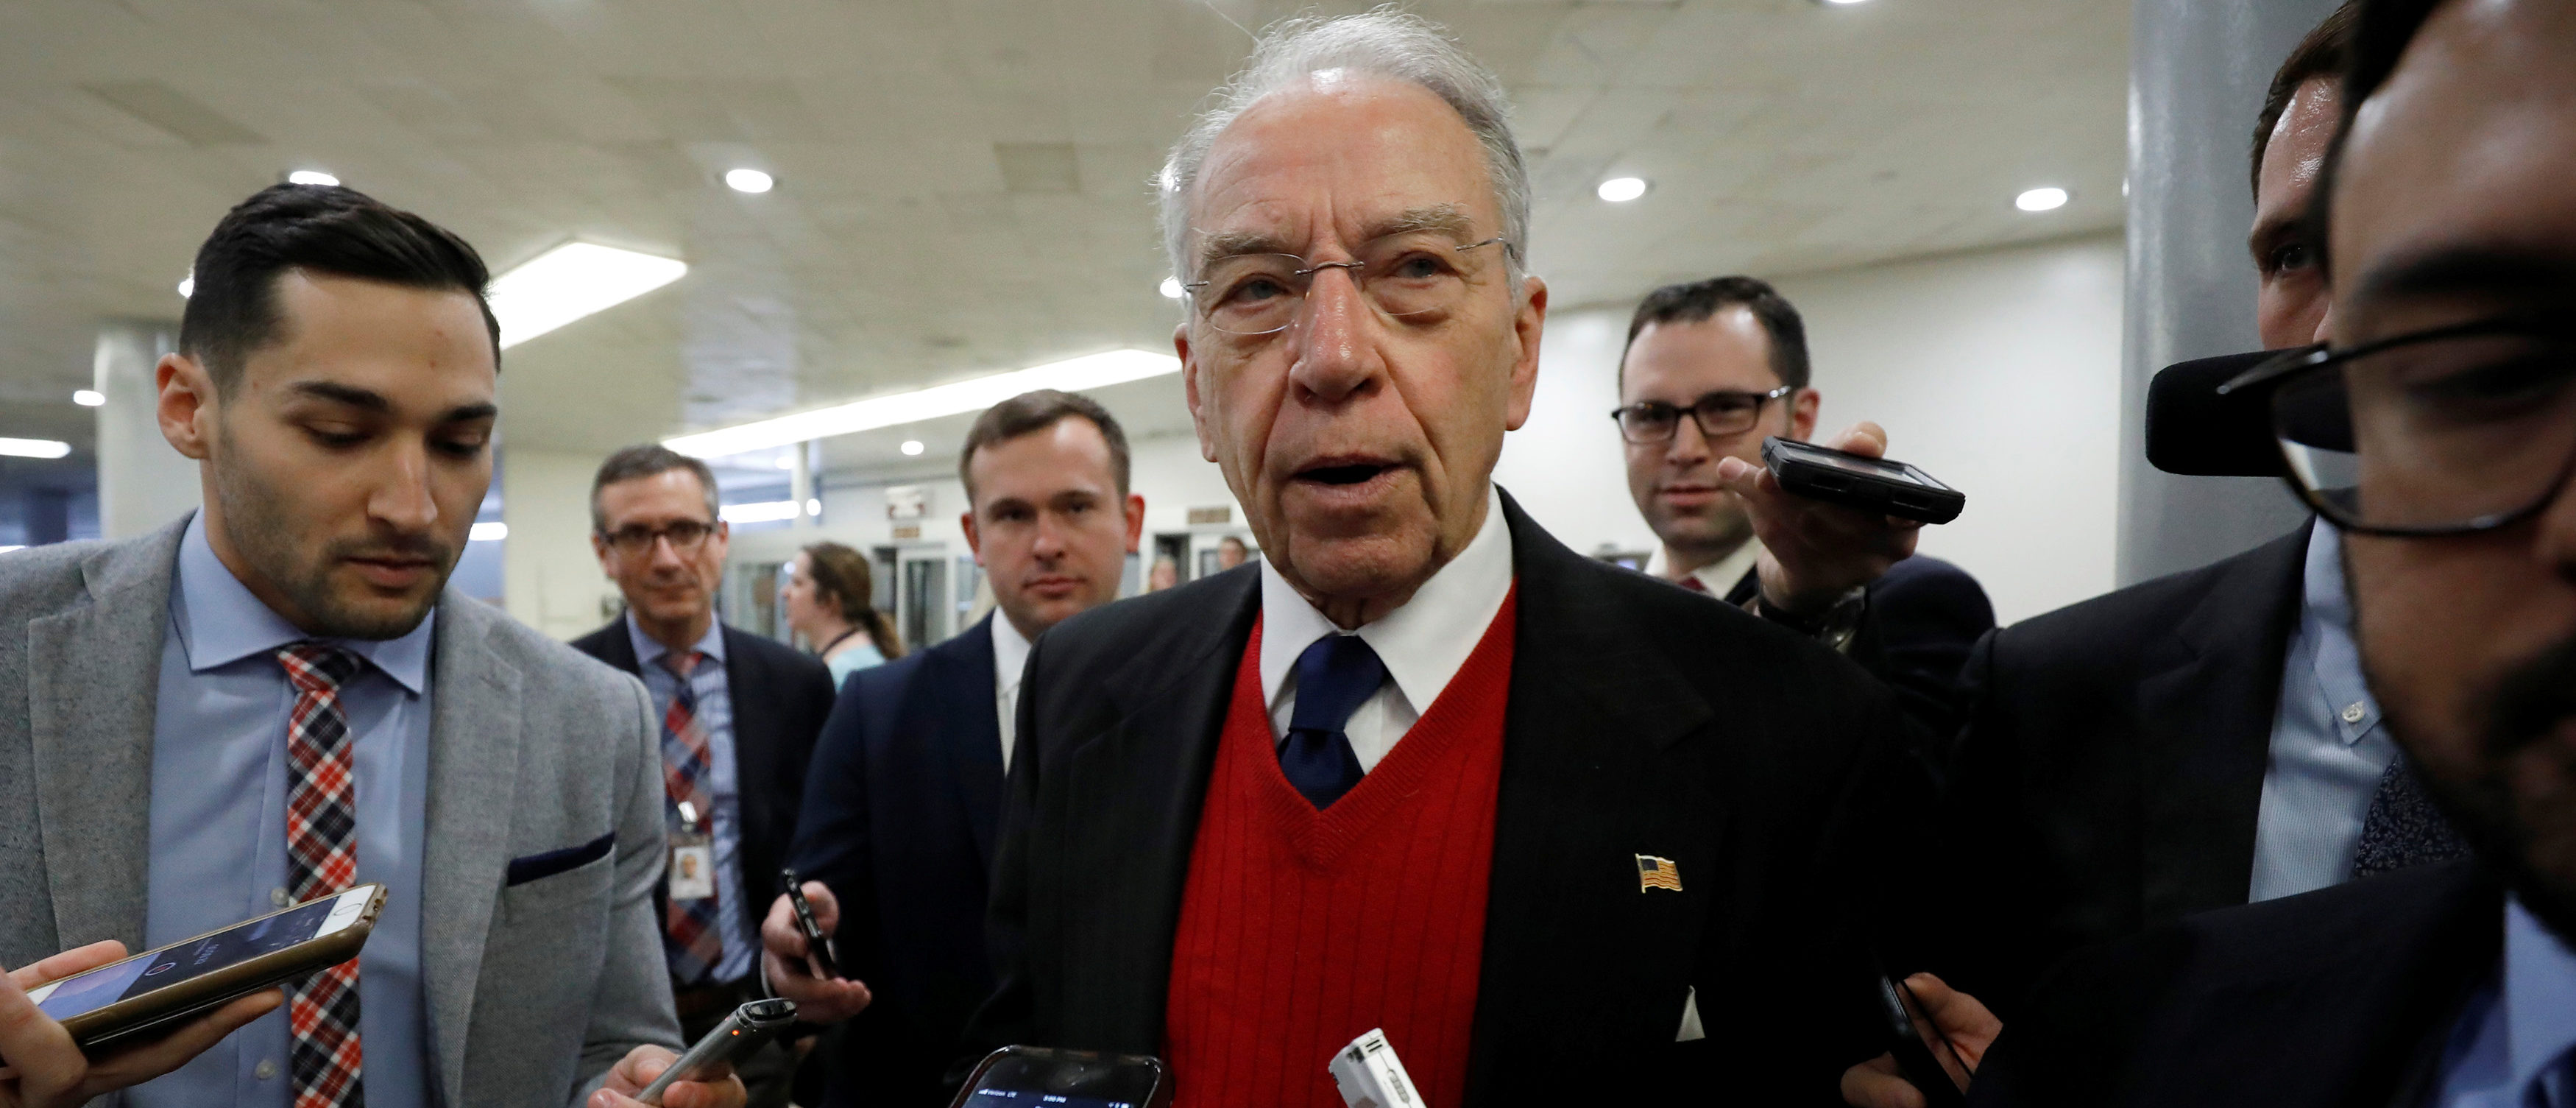 Sen. Chuck Grassley speaks with reporters ahead of votes on Capitol Hill in Washington, U.S., December 6, 2017. REUTERS/Aaron P. Bernstein - RC1377255B10